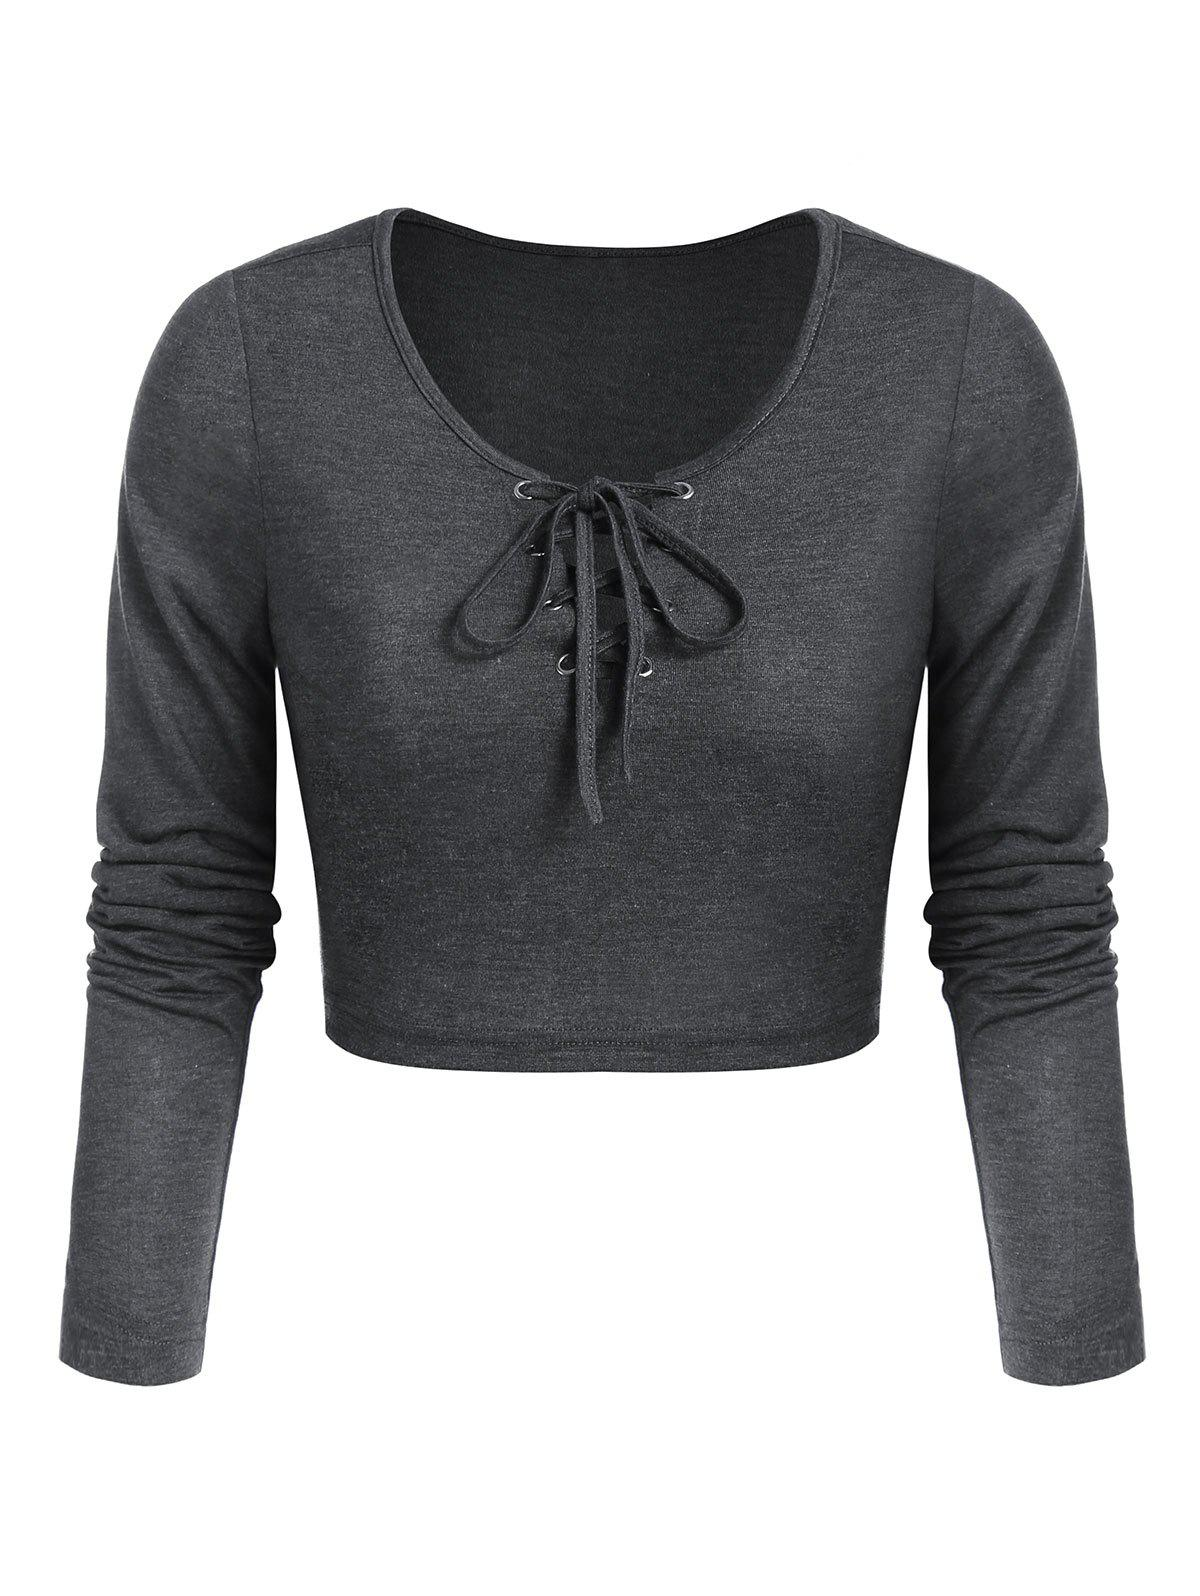 Lace-up Heathered Cropped T-shirt - ASH GRAY 3XL